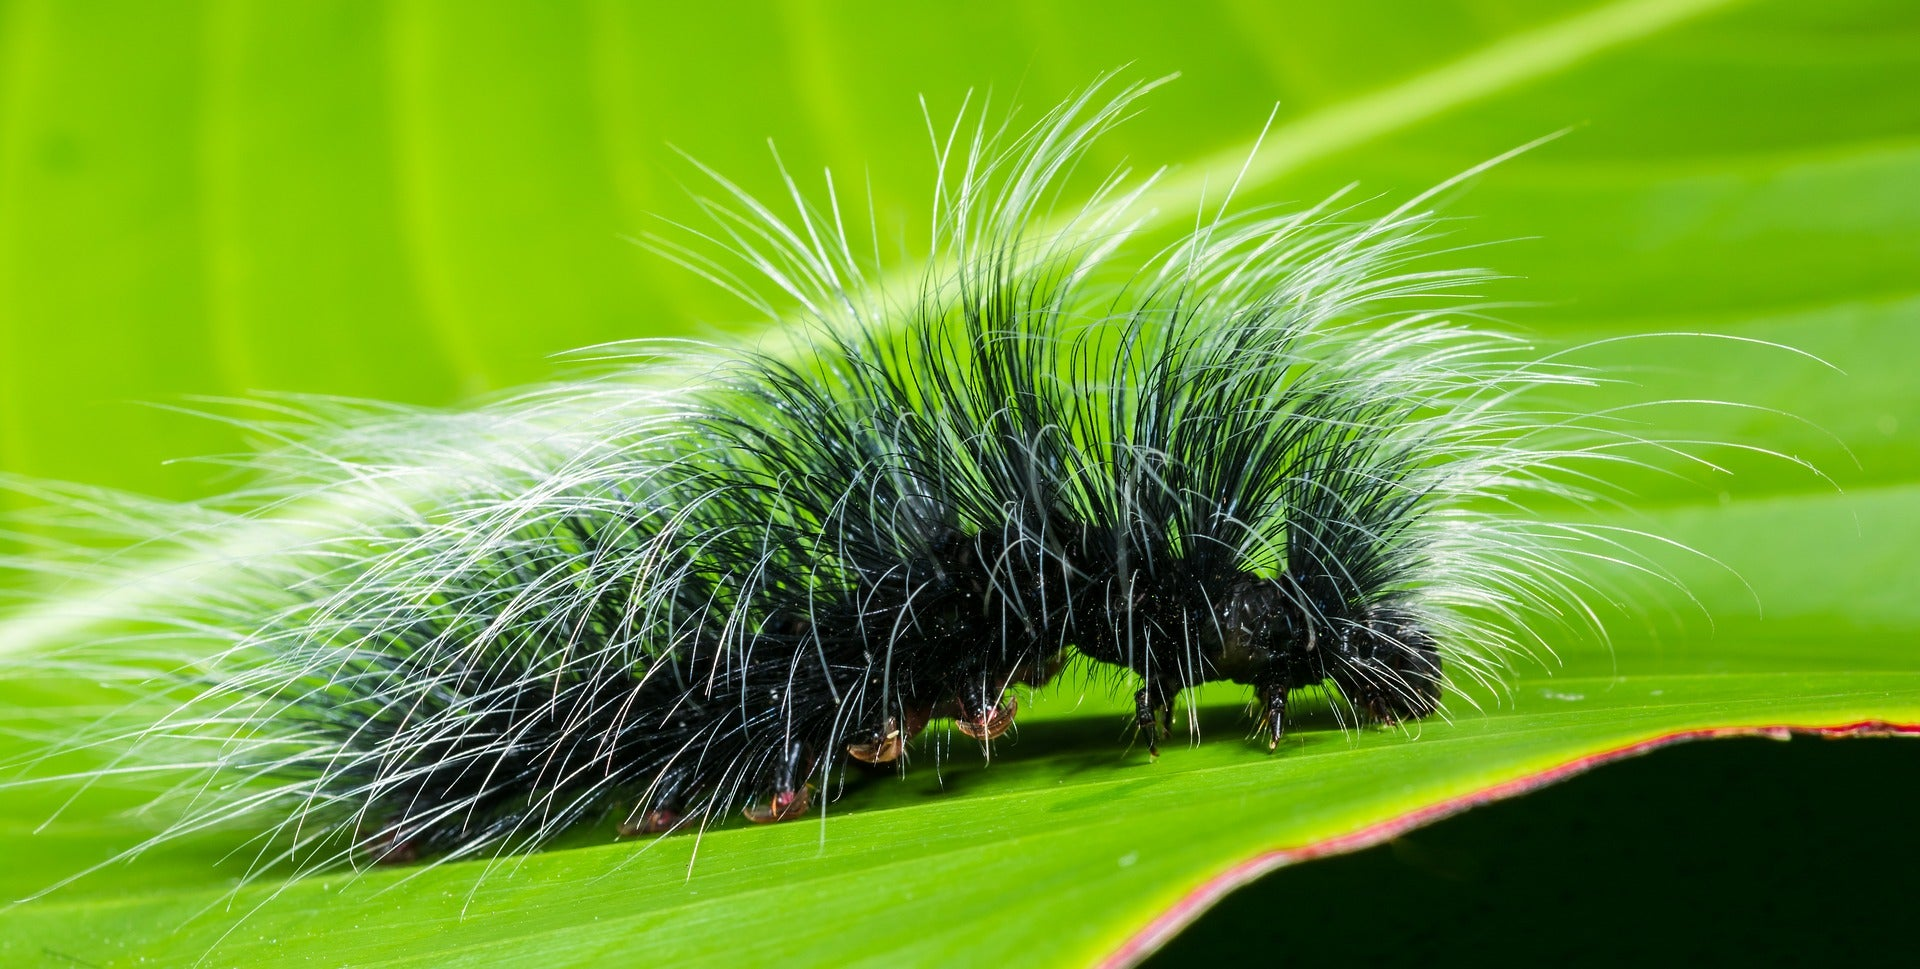 Plants have a trick that drives very hungry caterpillars to cannibalism